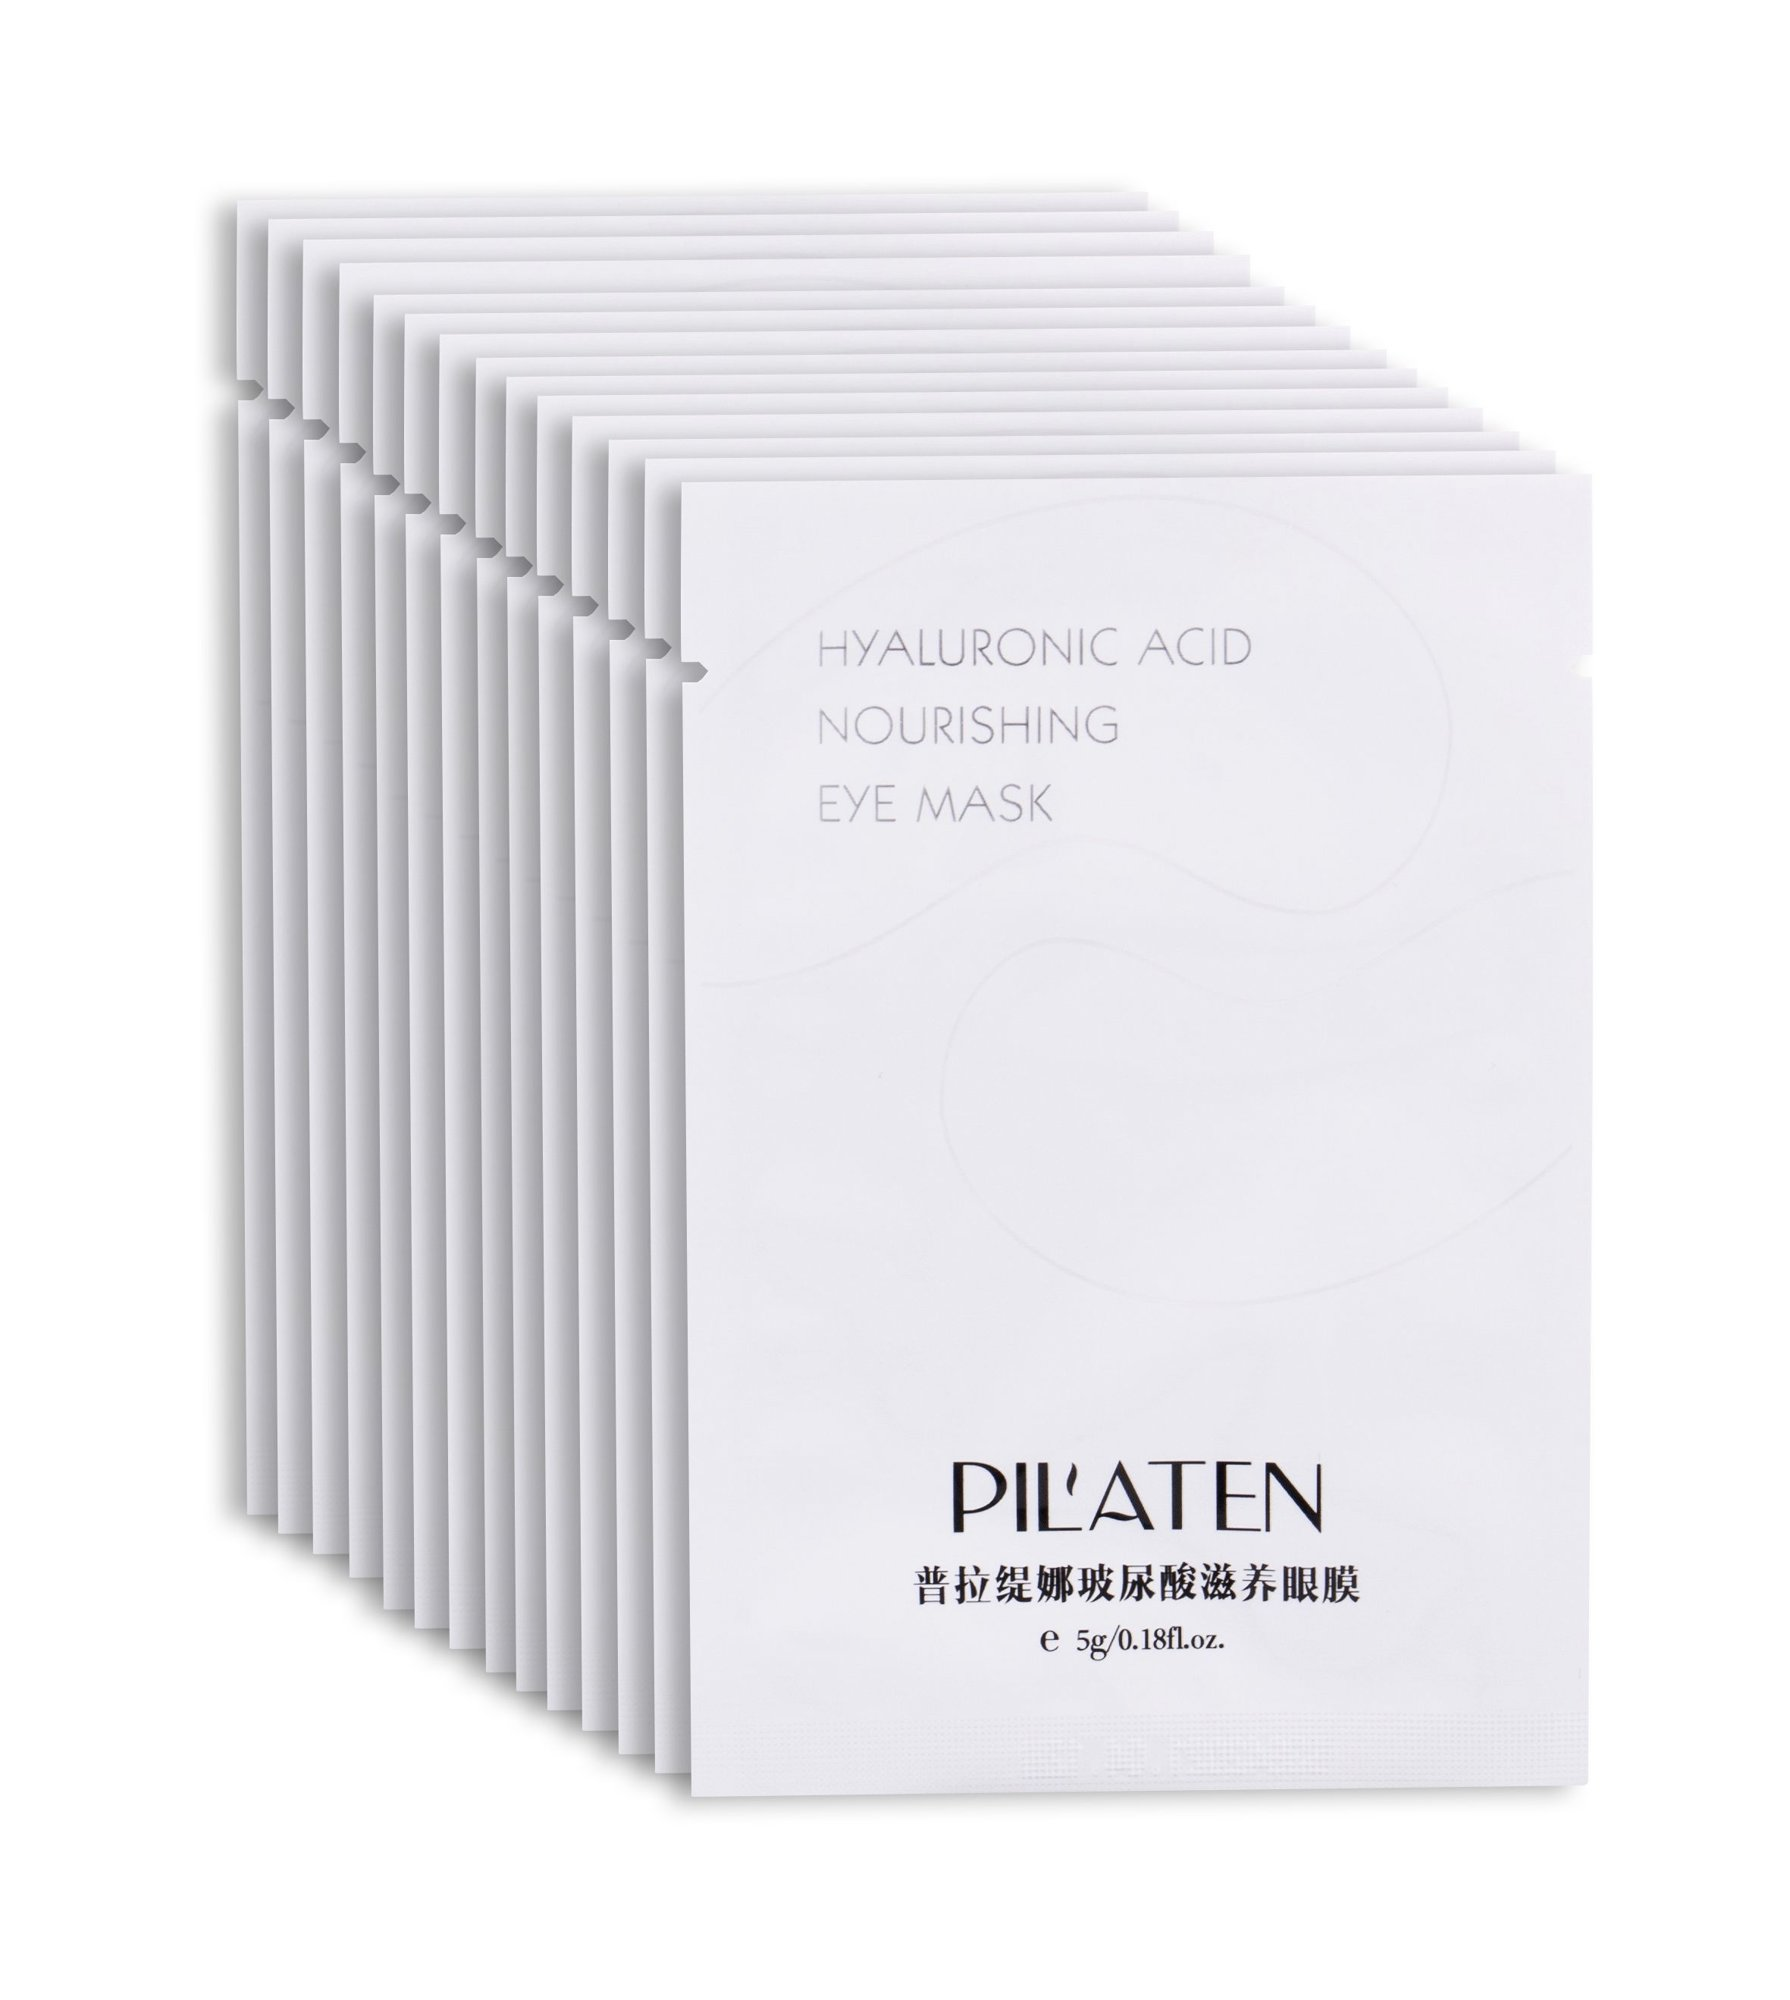 Pilaten Hyaluronic Acid Face Mask 70ml